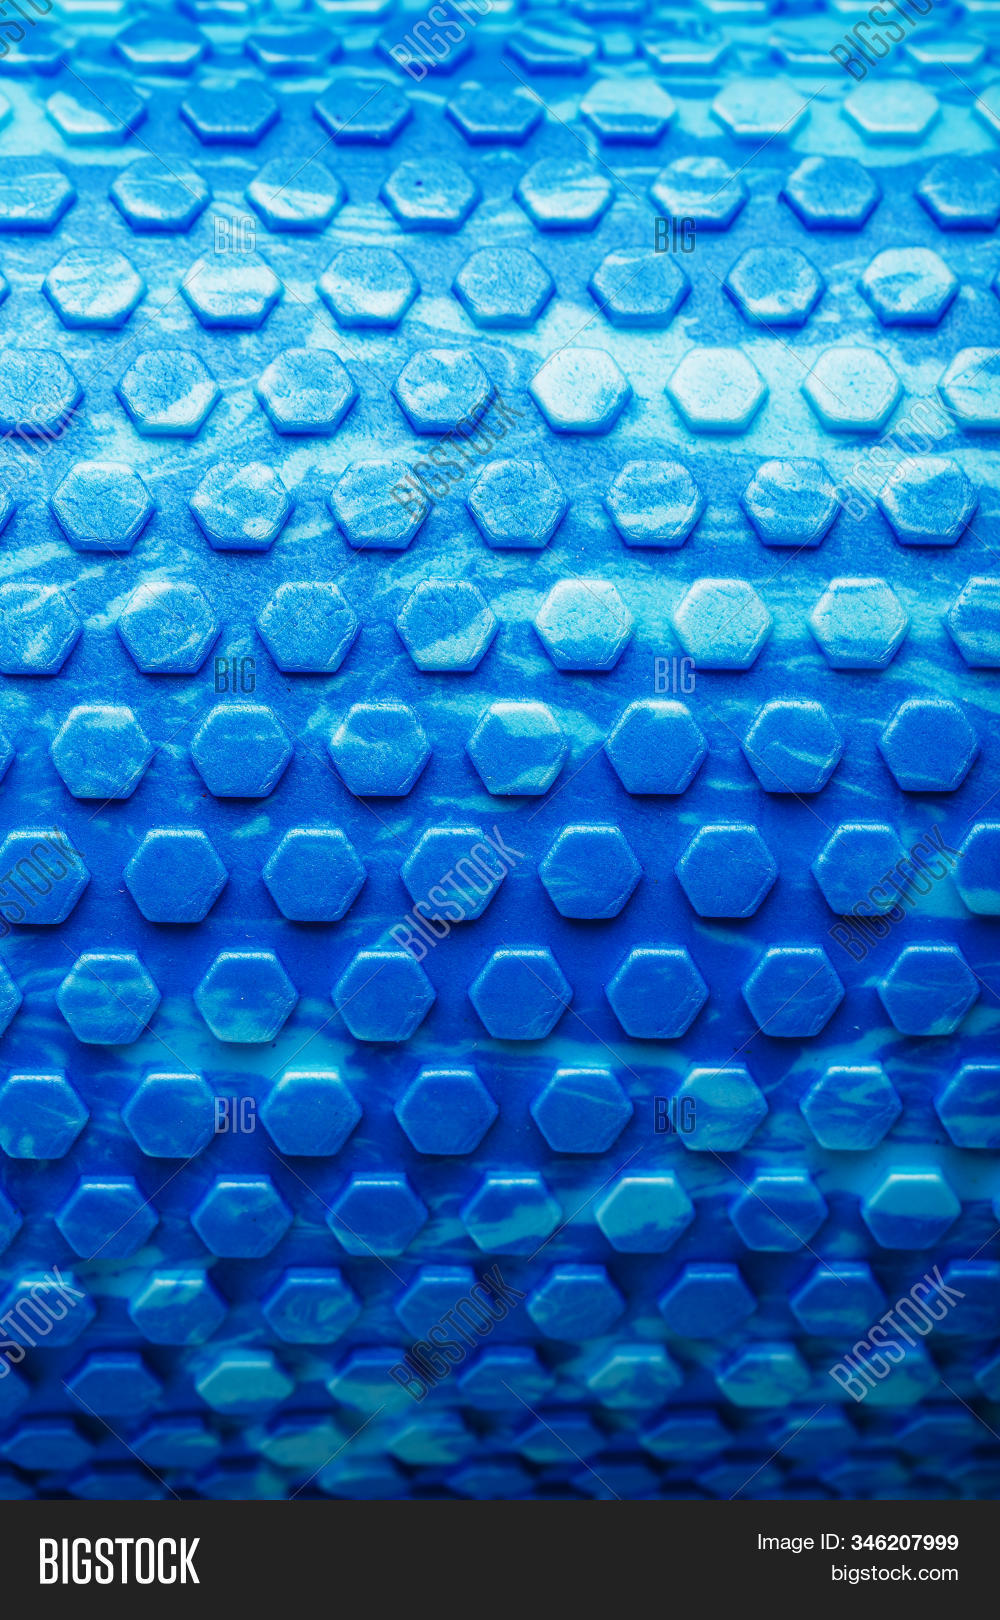 Abstract Texture Blue Image Photo Free Trial Bigstock